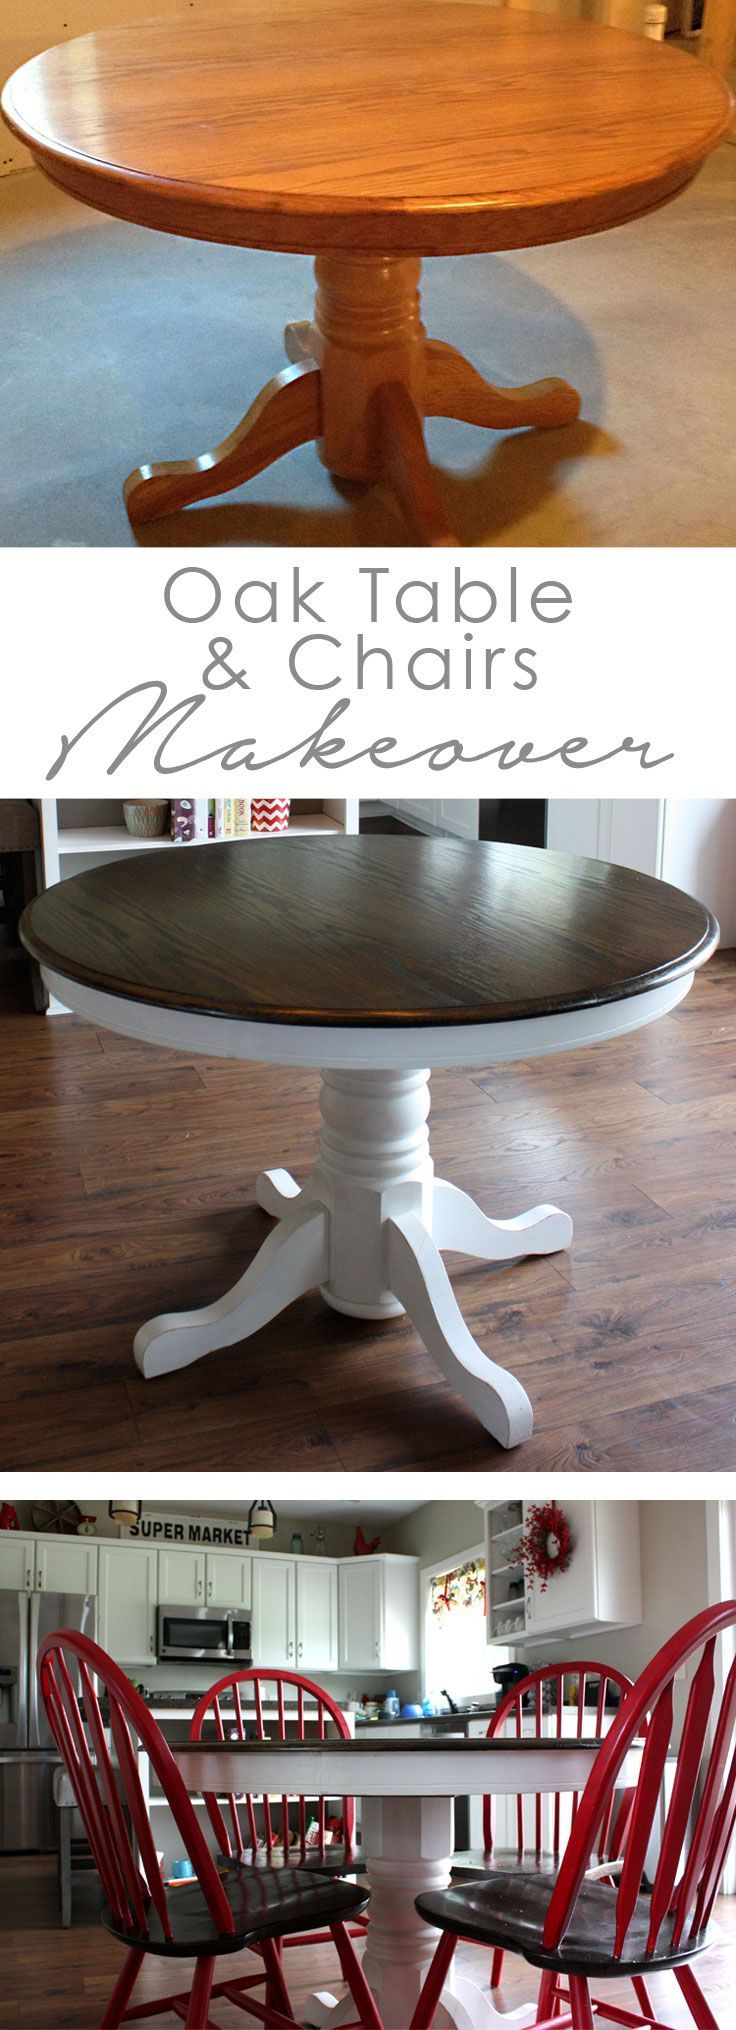 DIY oak table and chair makeover